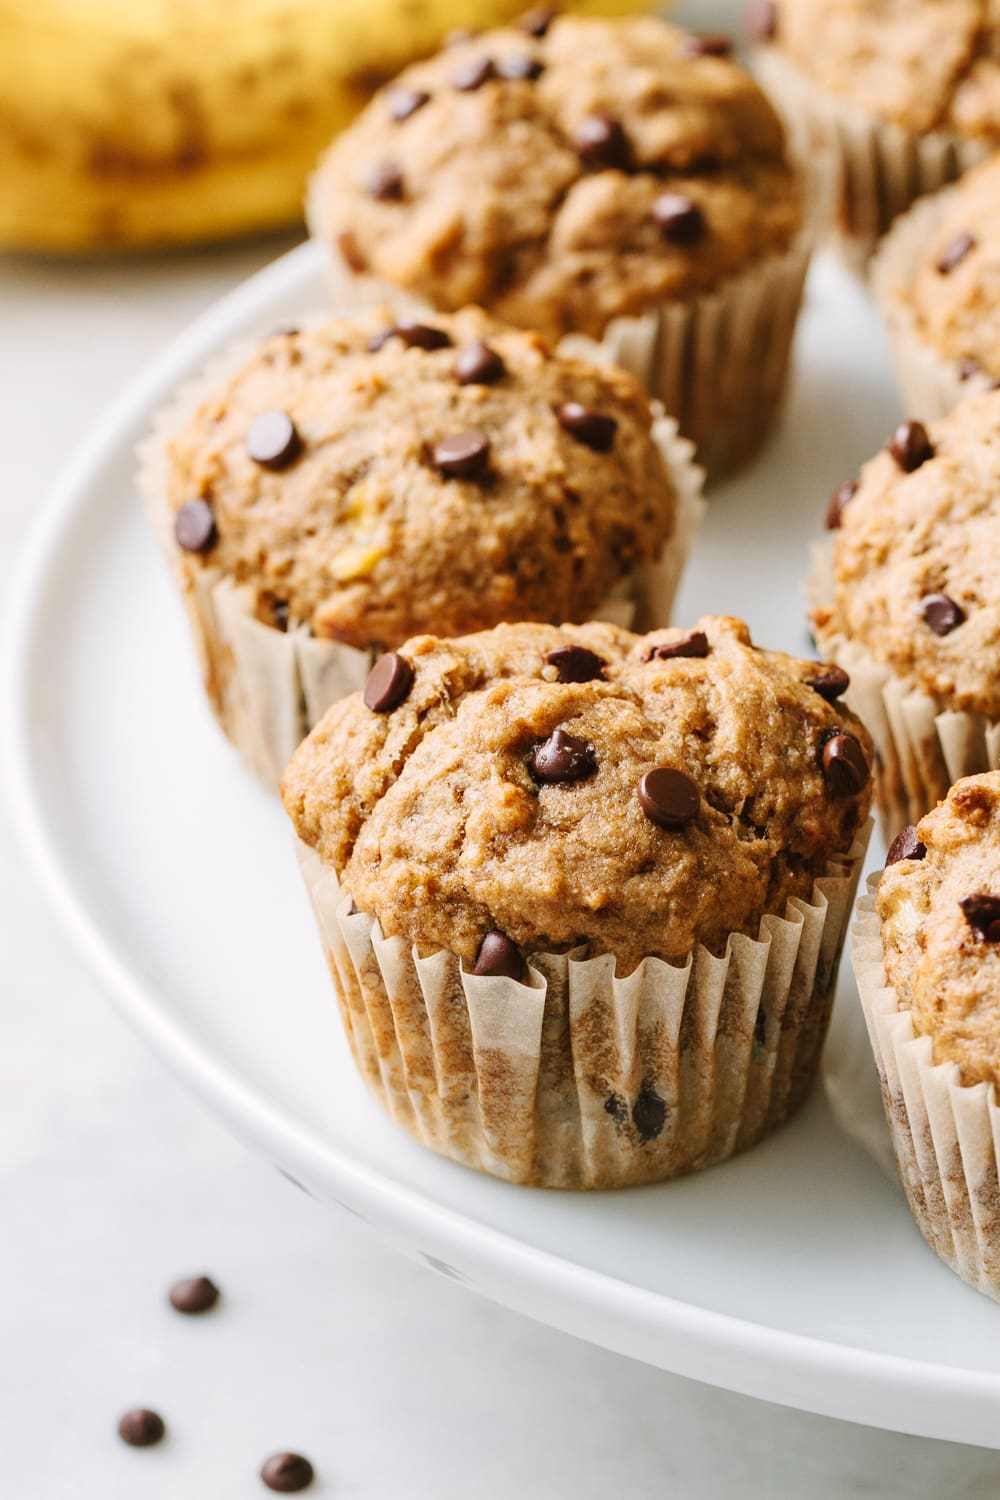 Chocolate chip muffin recipe with nutrition facts